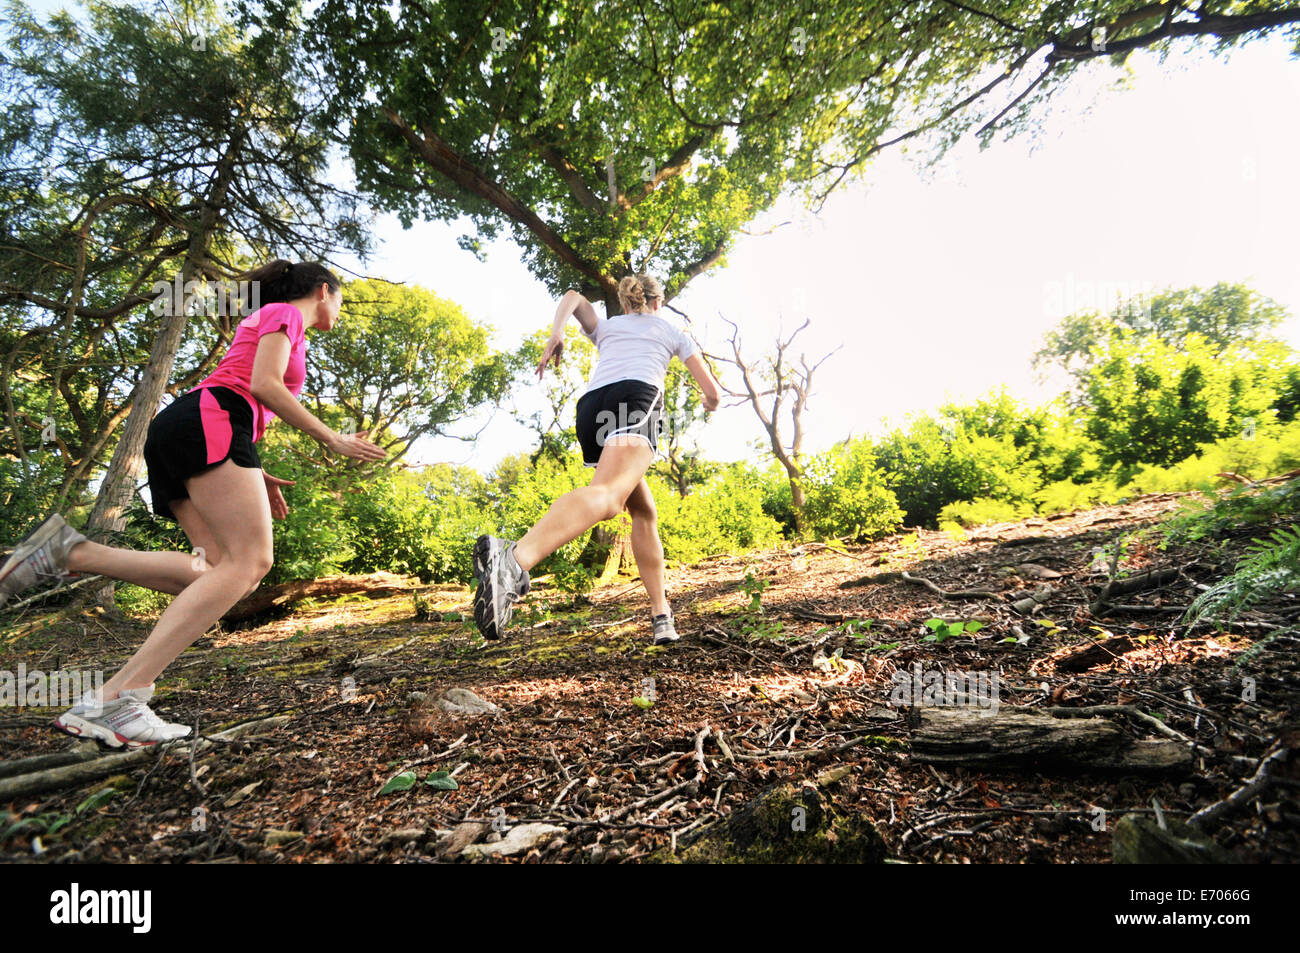 Two young women runners running up forest track - Stock Image